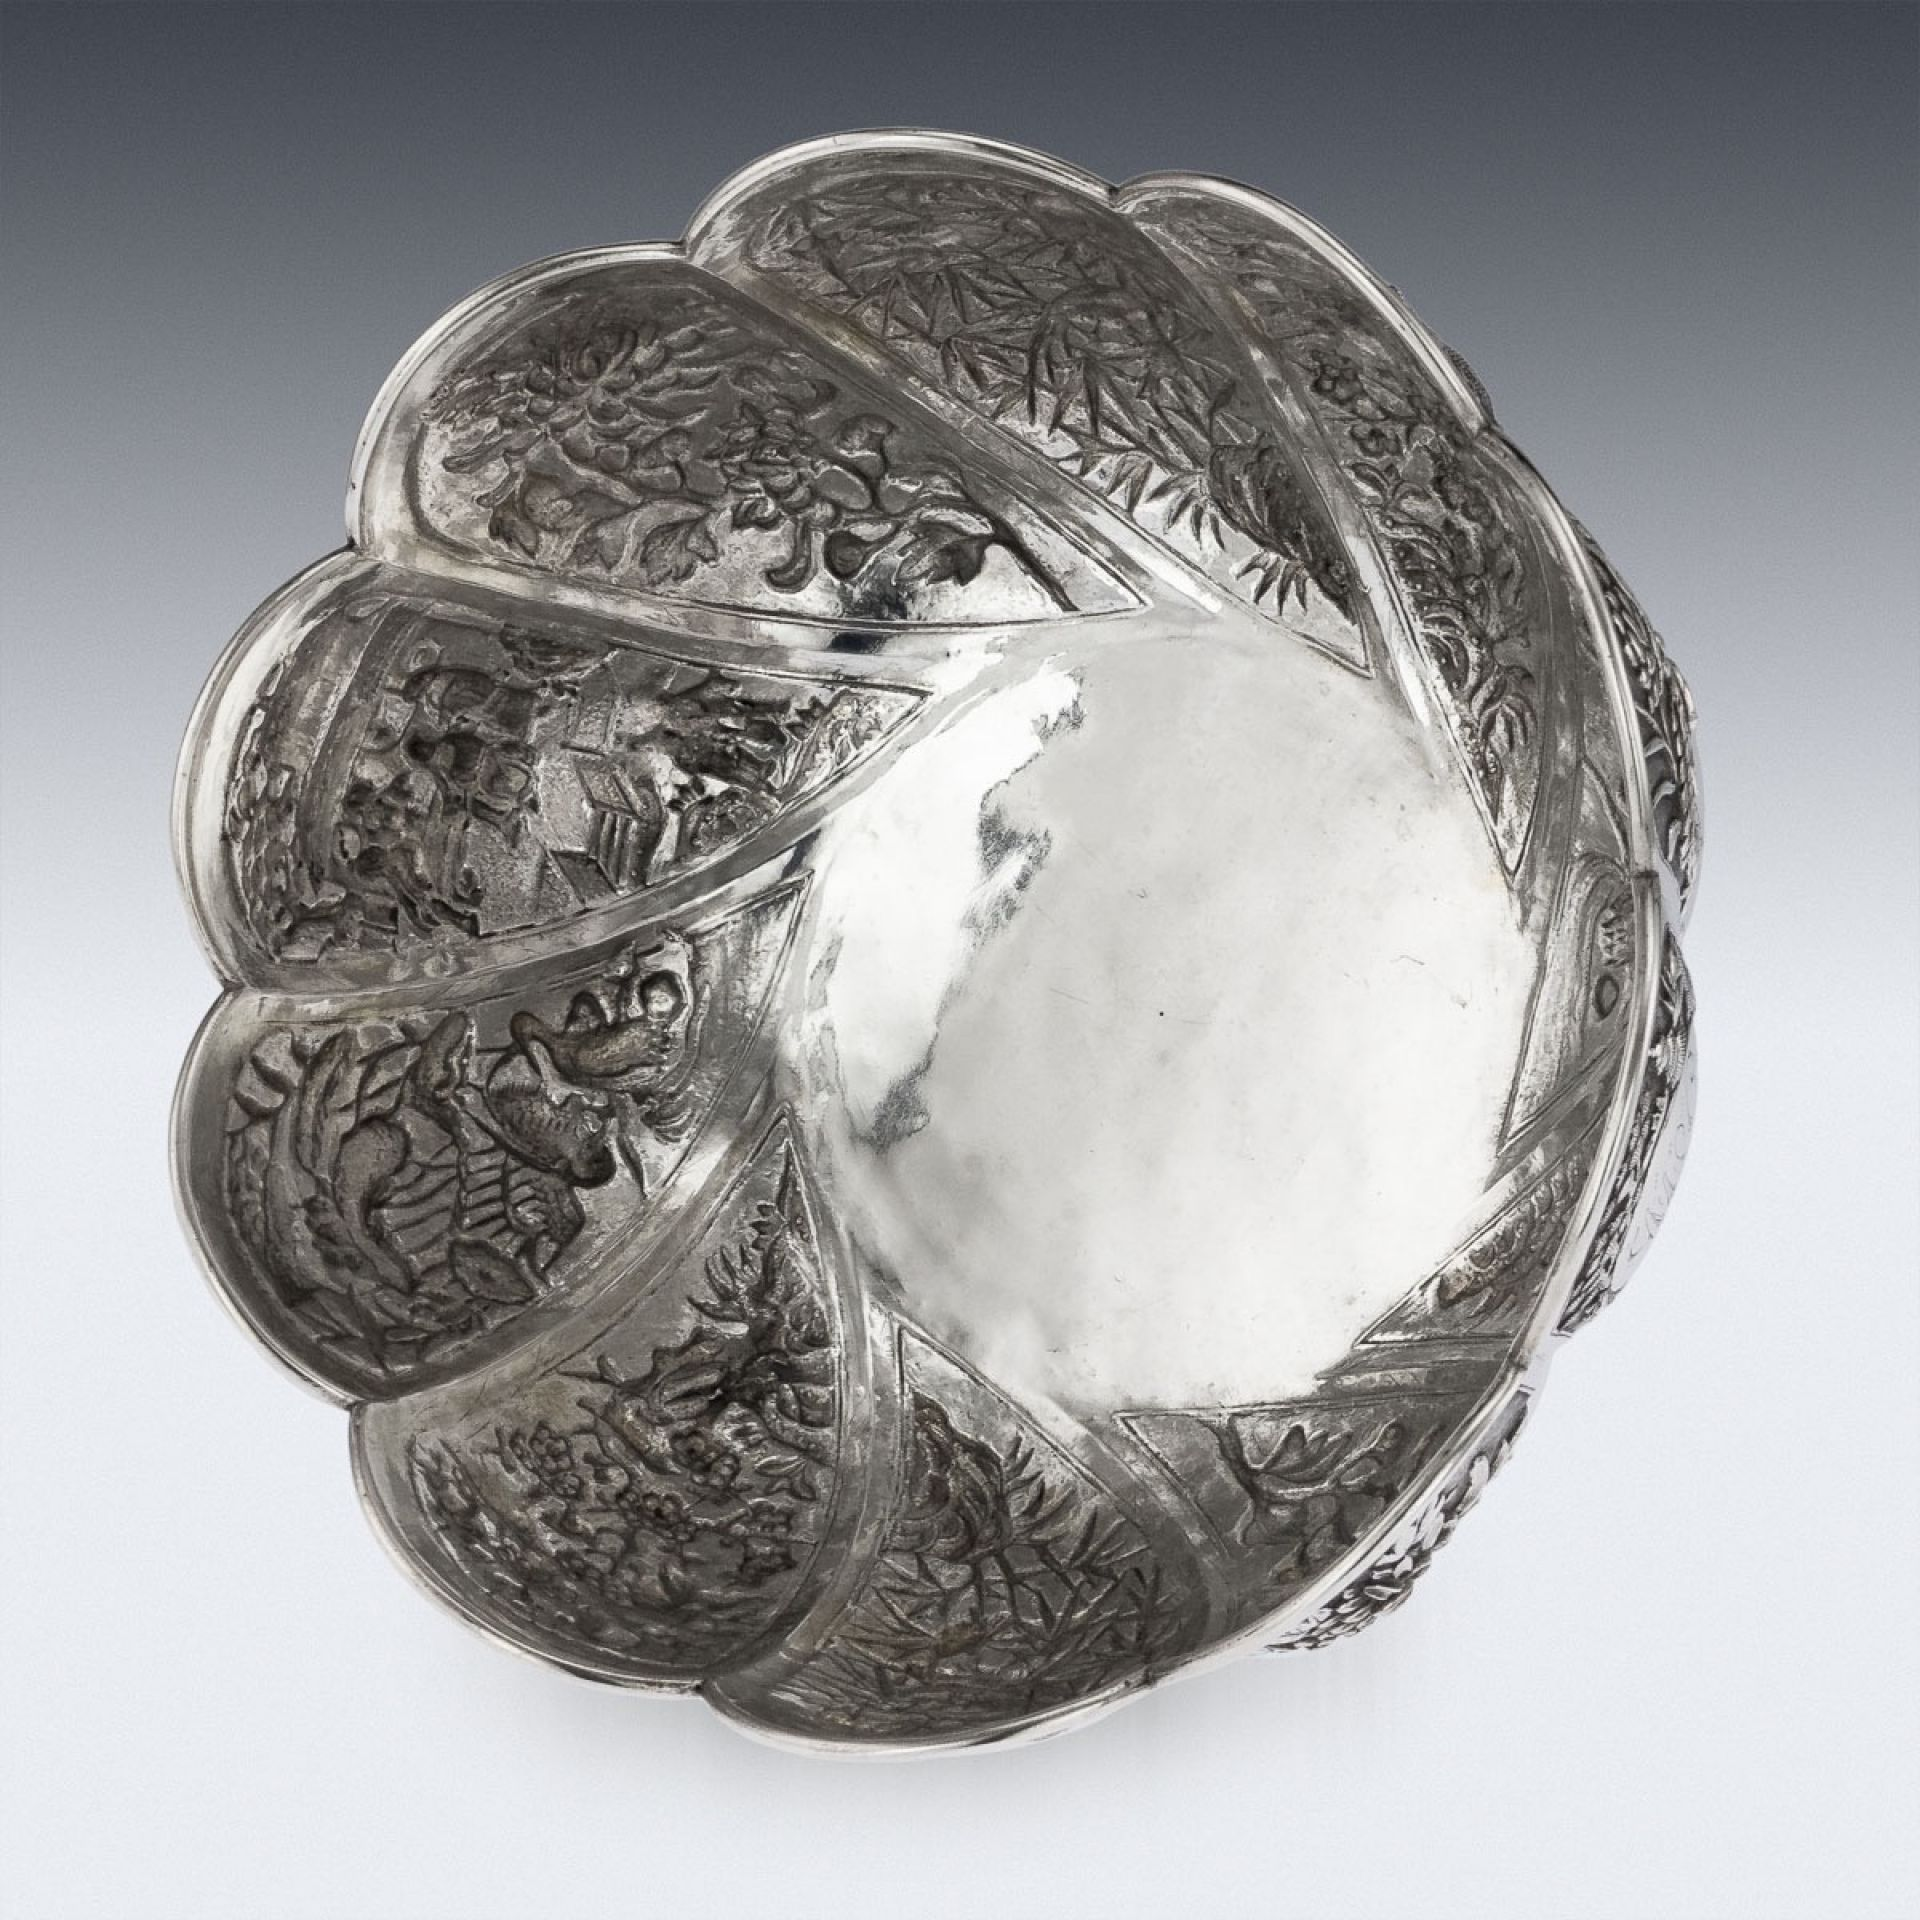 ANTIQUE 19thC CHINESE EXPORT SOLID SILVER BOWL, HUNG CHONG, SHANGHAI c.1890